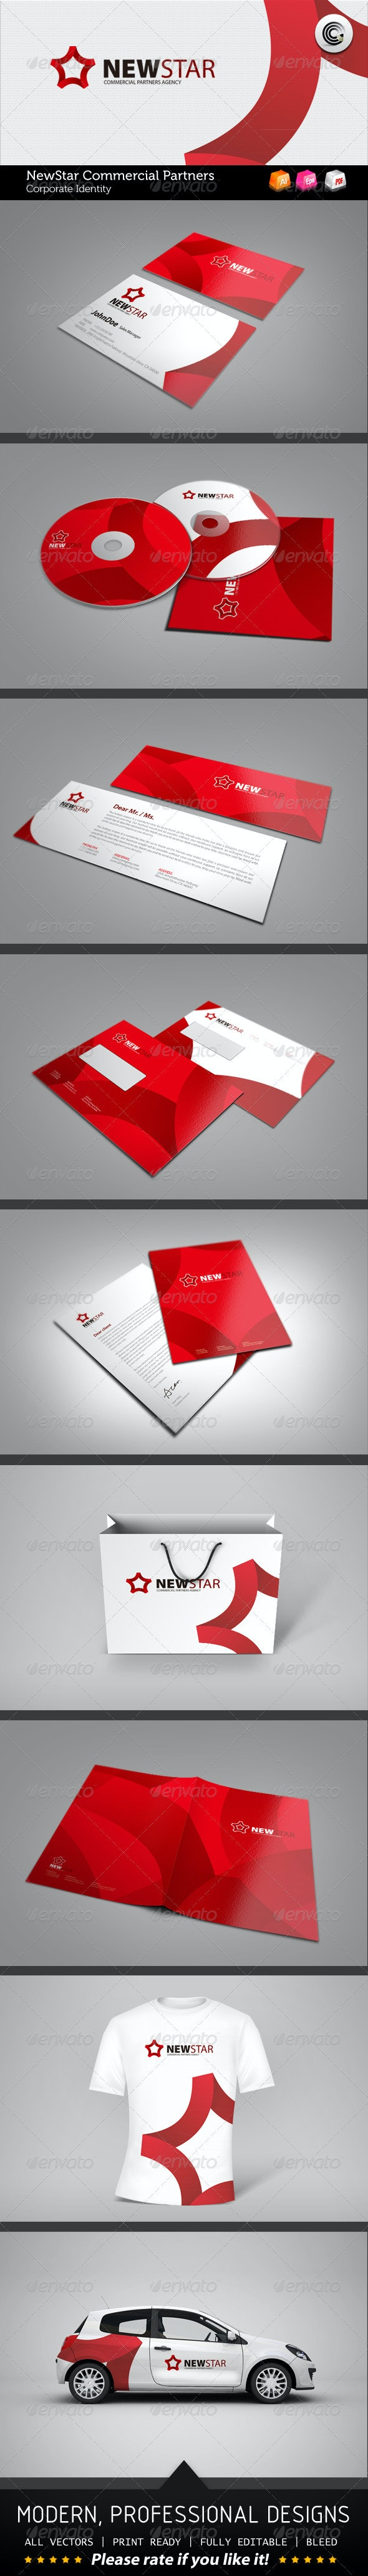 New Star Commercial Partners Corporate Identity - Stationery Print Templates